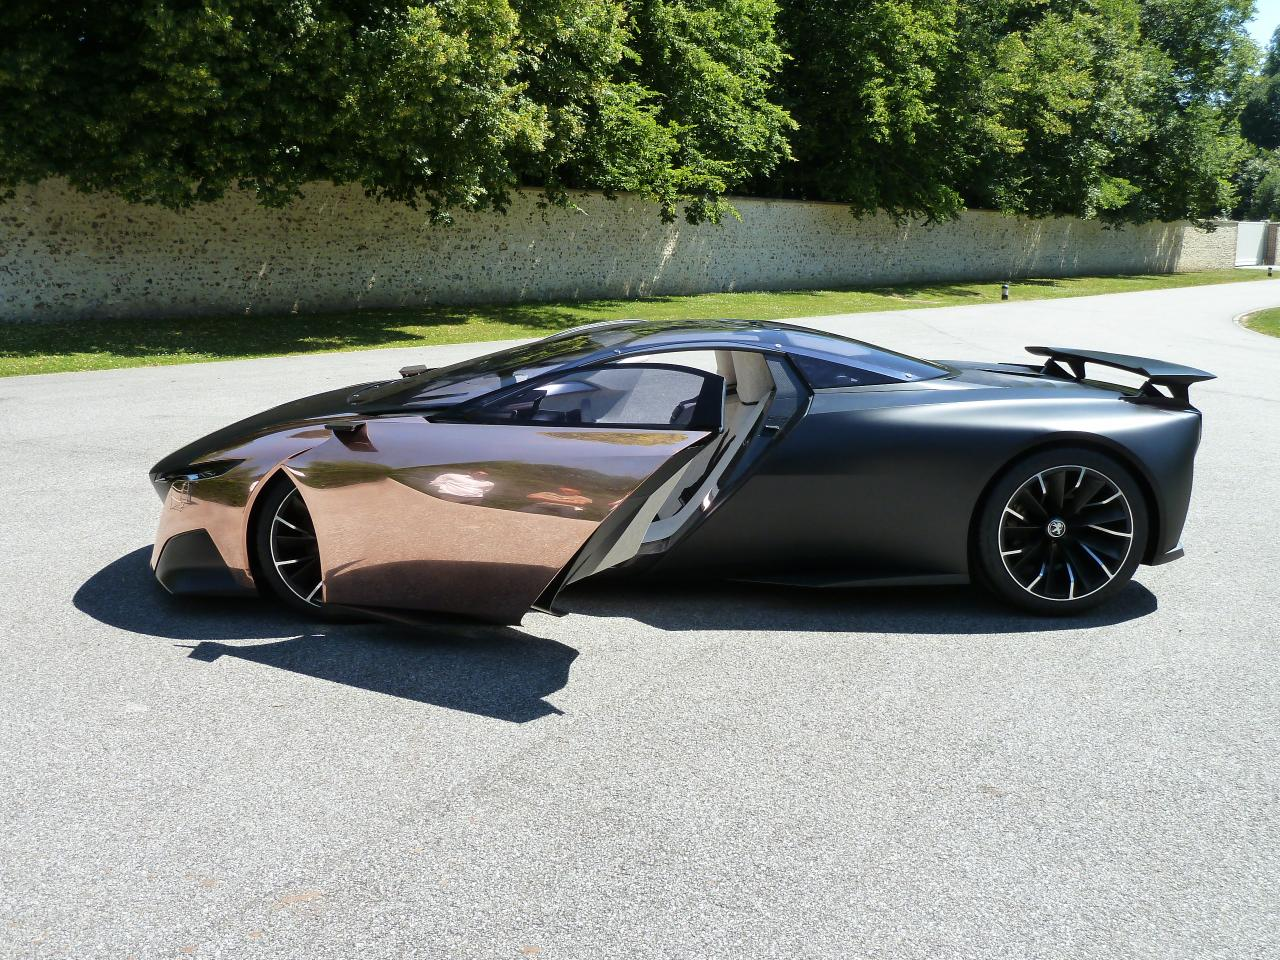 Onyx Car Parts : Peugeot onyx concept car at goodwood festival of speed